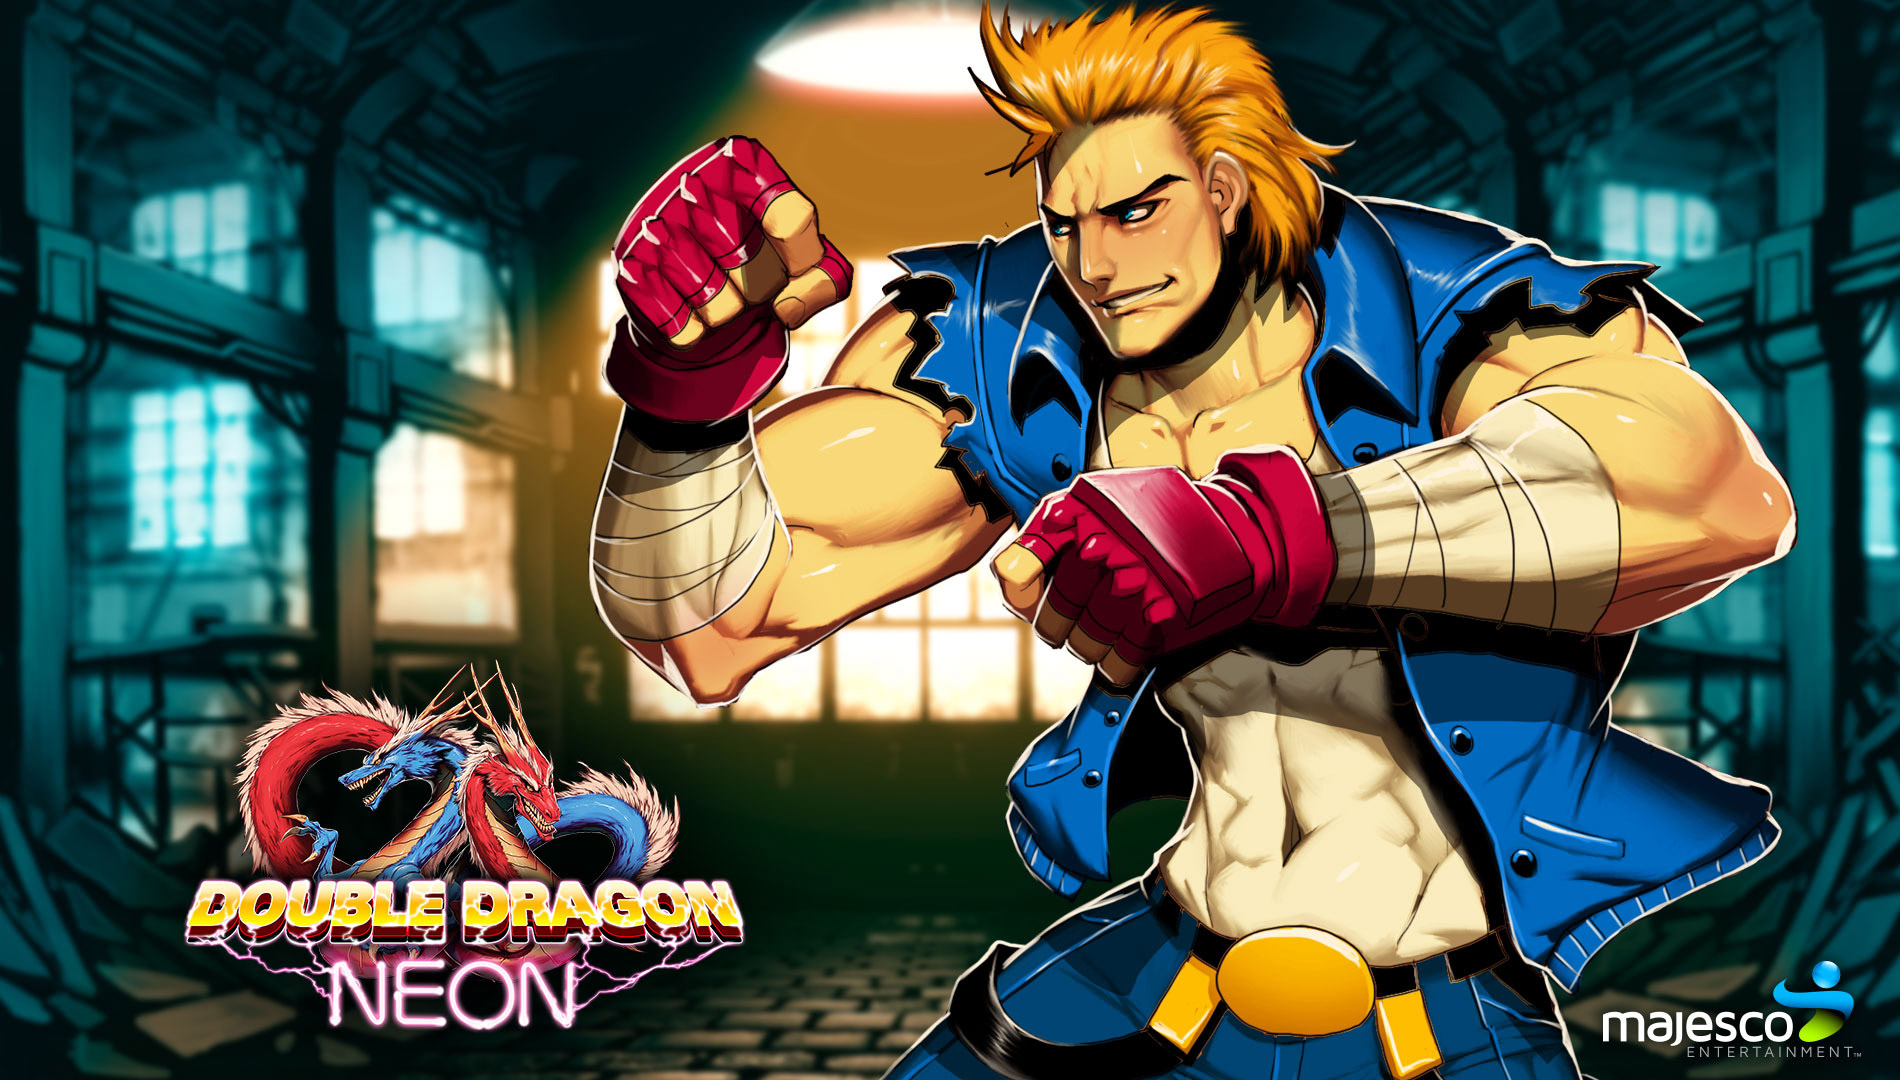 Free Double Dragon Neon Wallpaper in 1920x1080